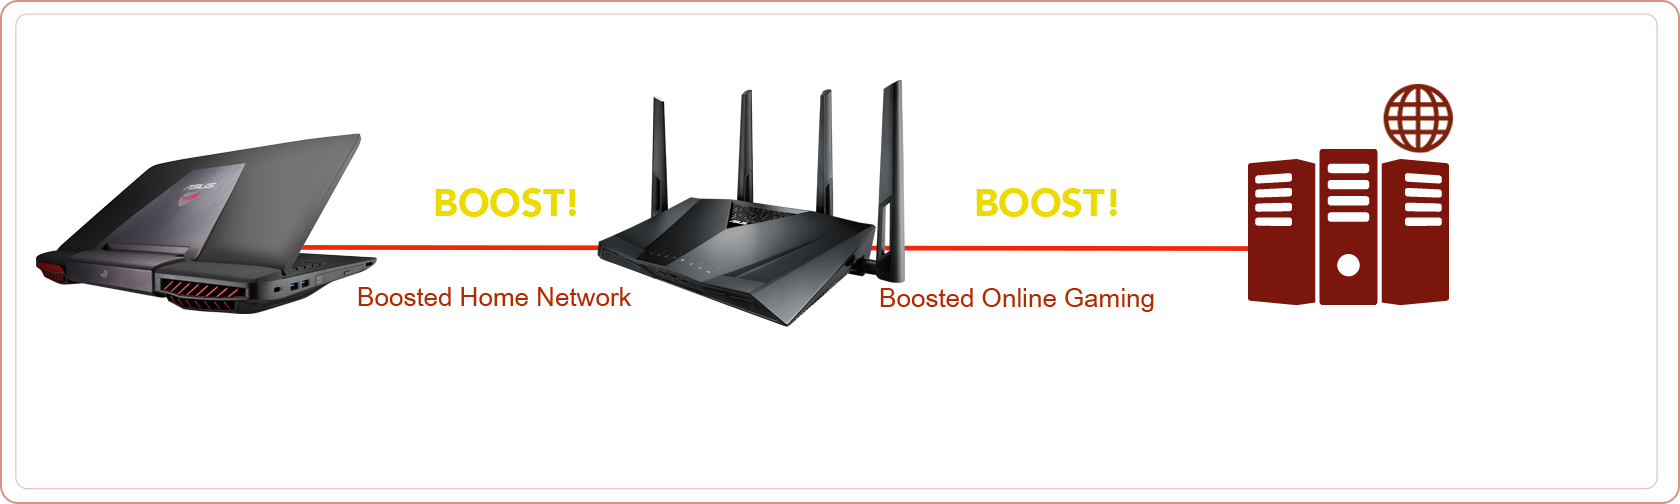 RT-AC3100 gaming router boosts both home network and online gaming